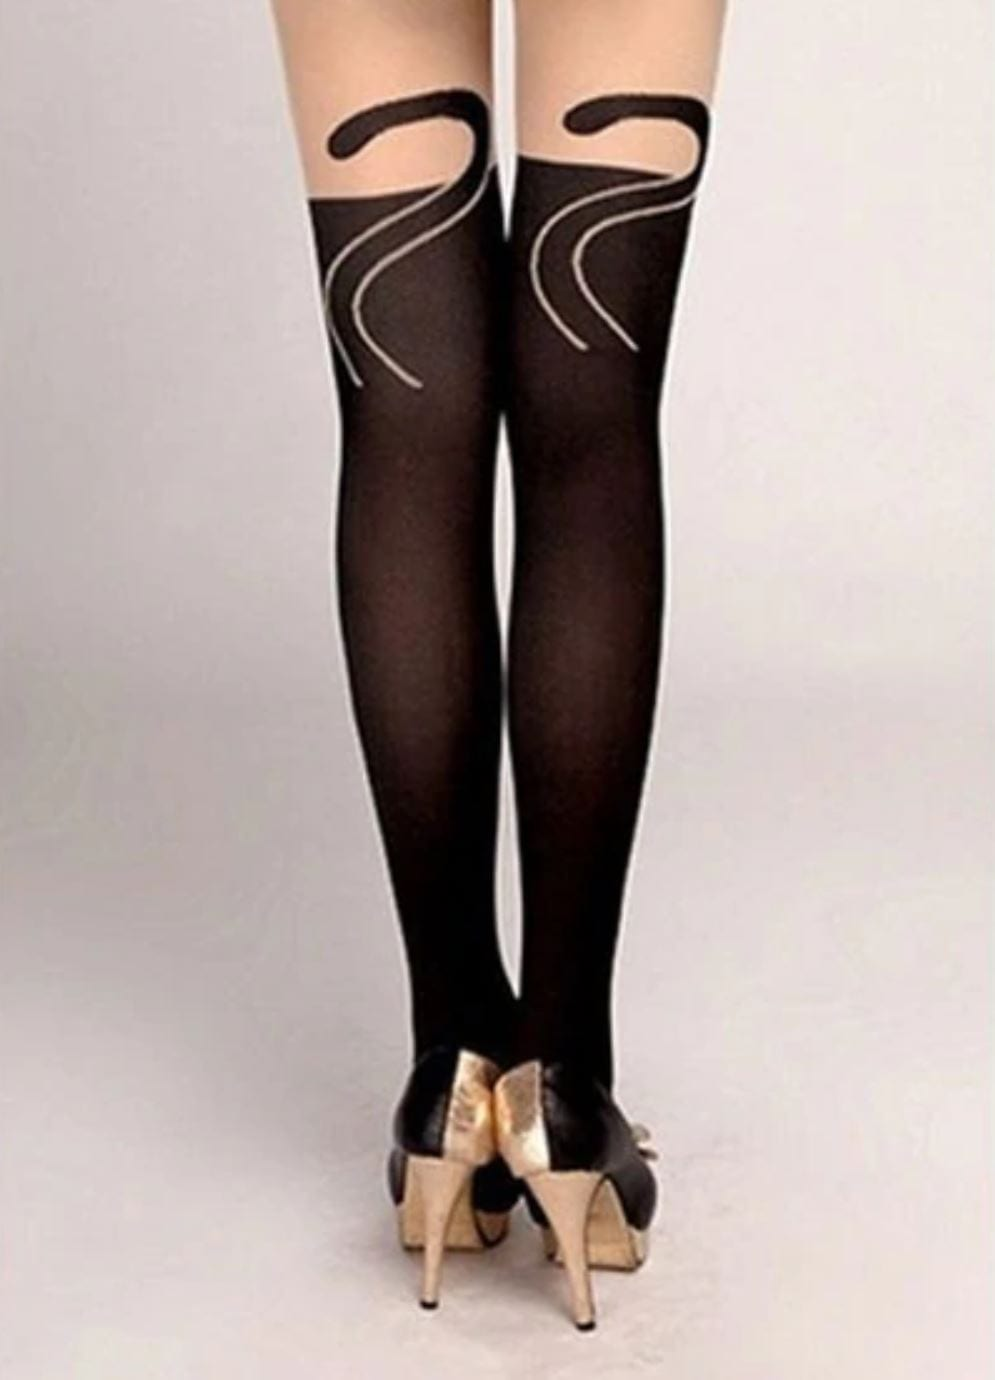 CAT STRUT STOCKINGS